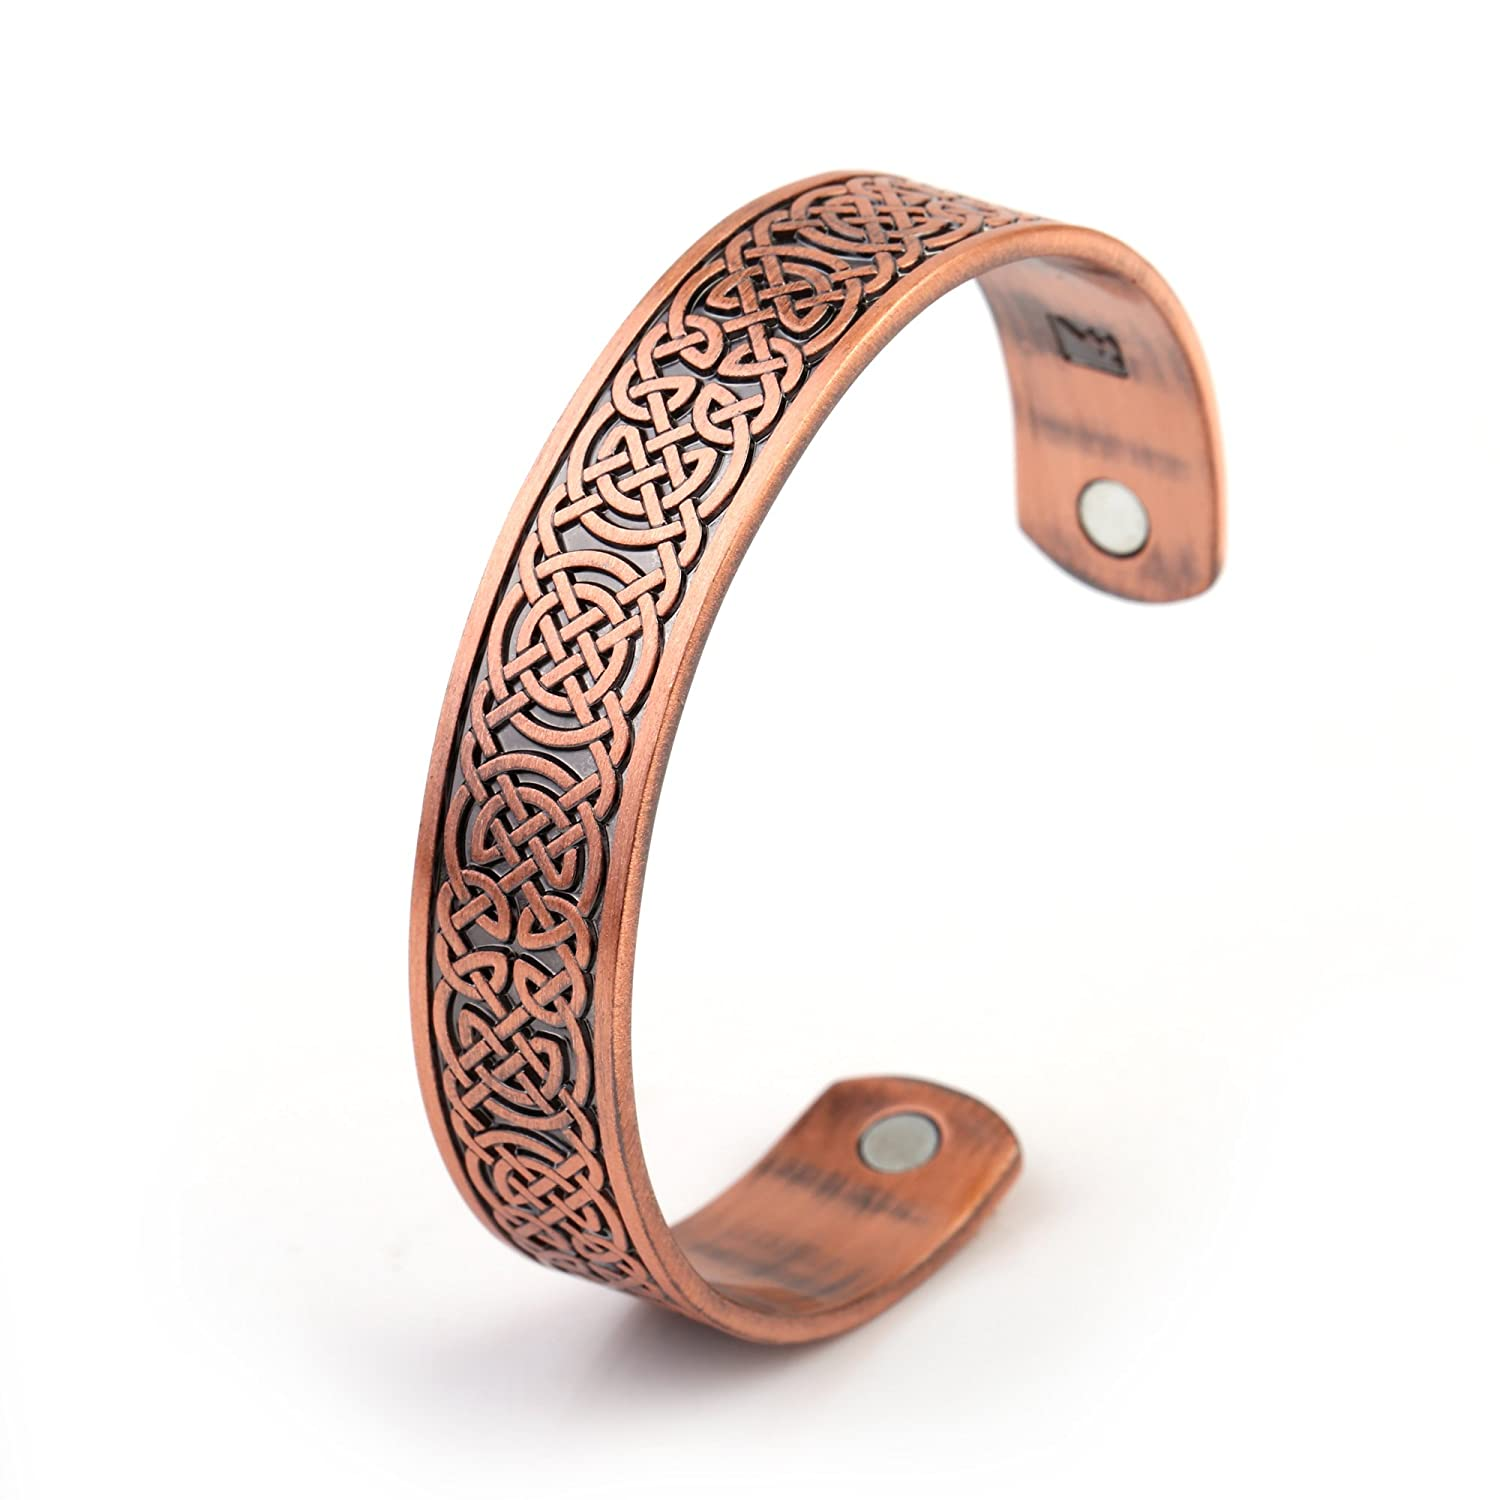 Fashion Health Care Irish Knot Men Magnetic Bracelet Women Cuff Bangle YI WU KE JI YW-B109566